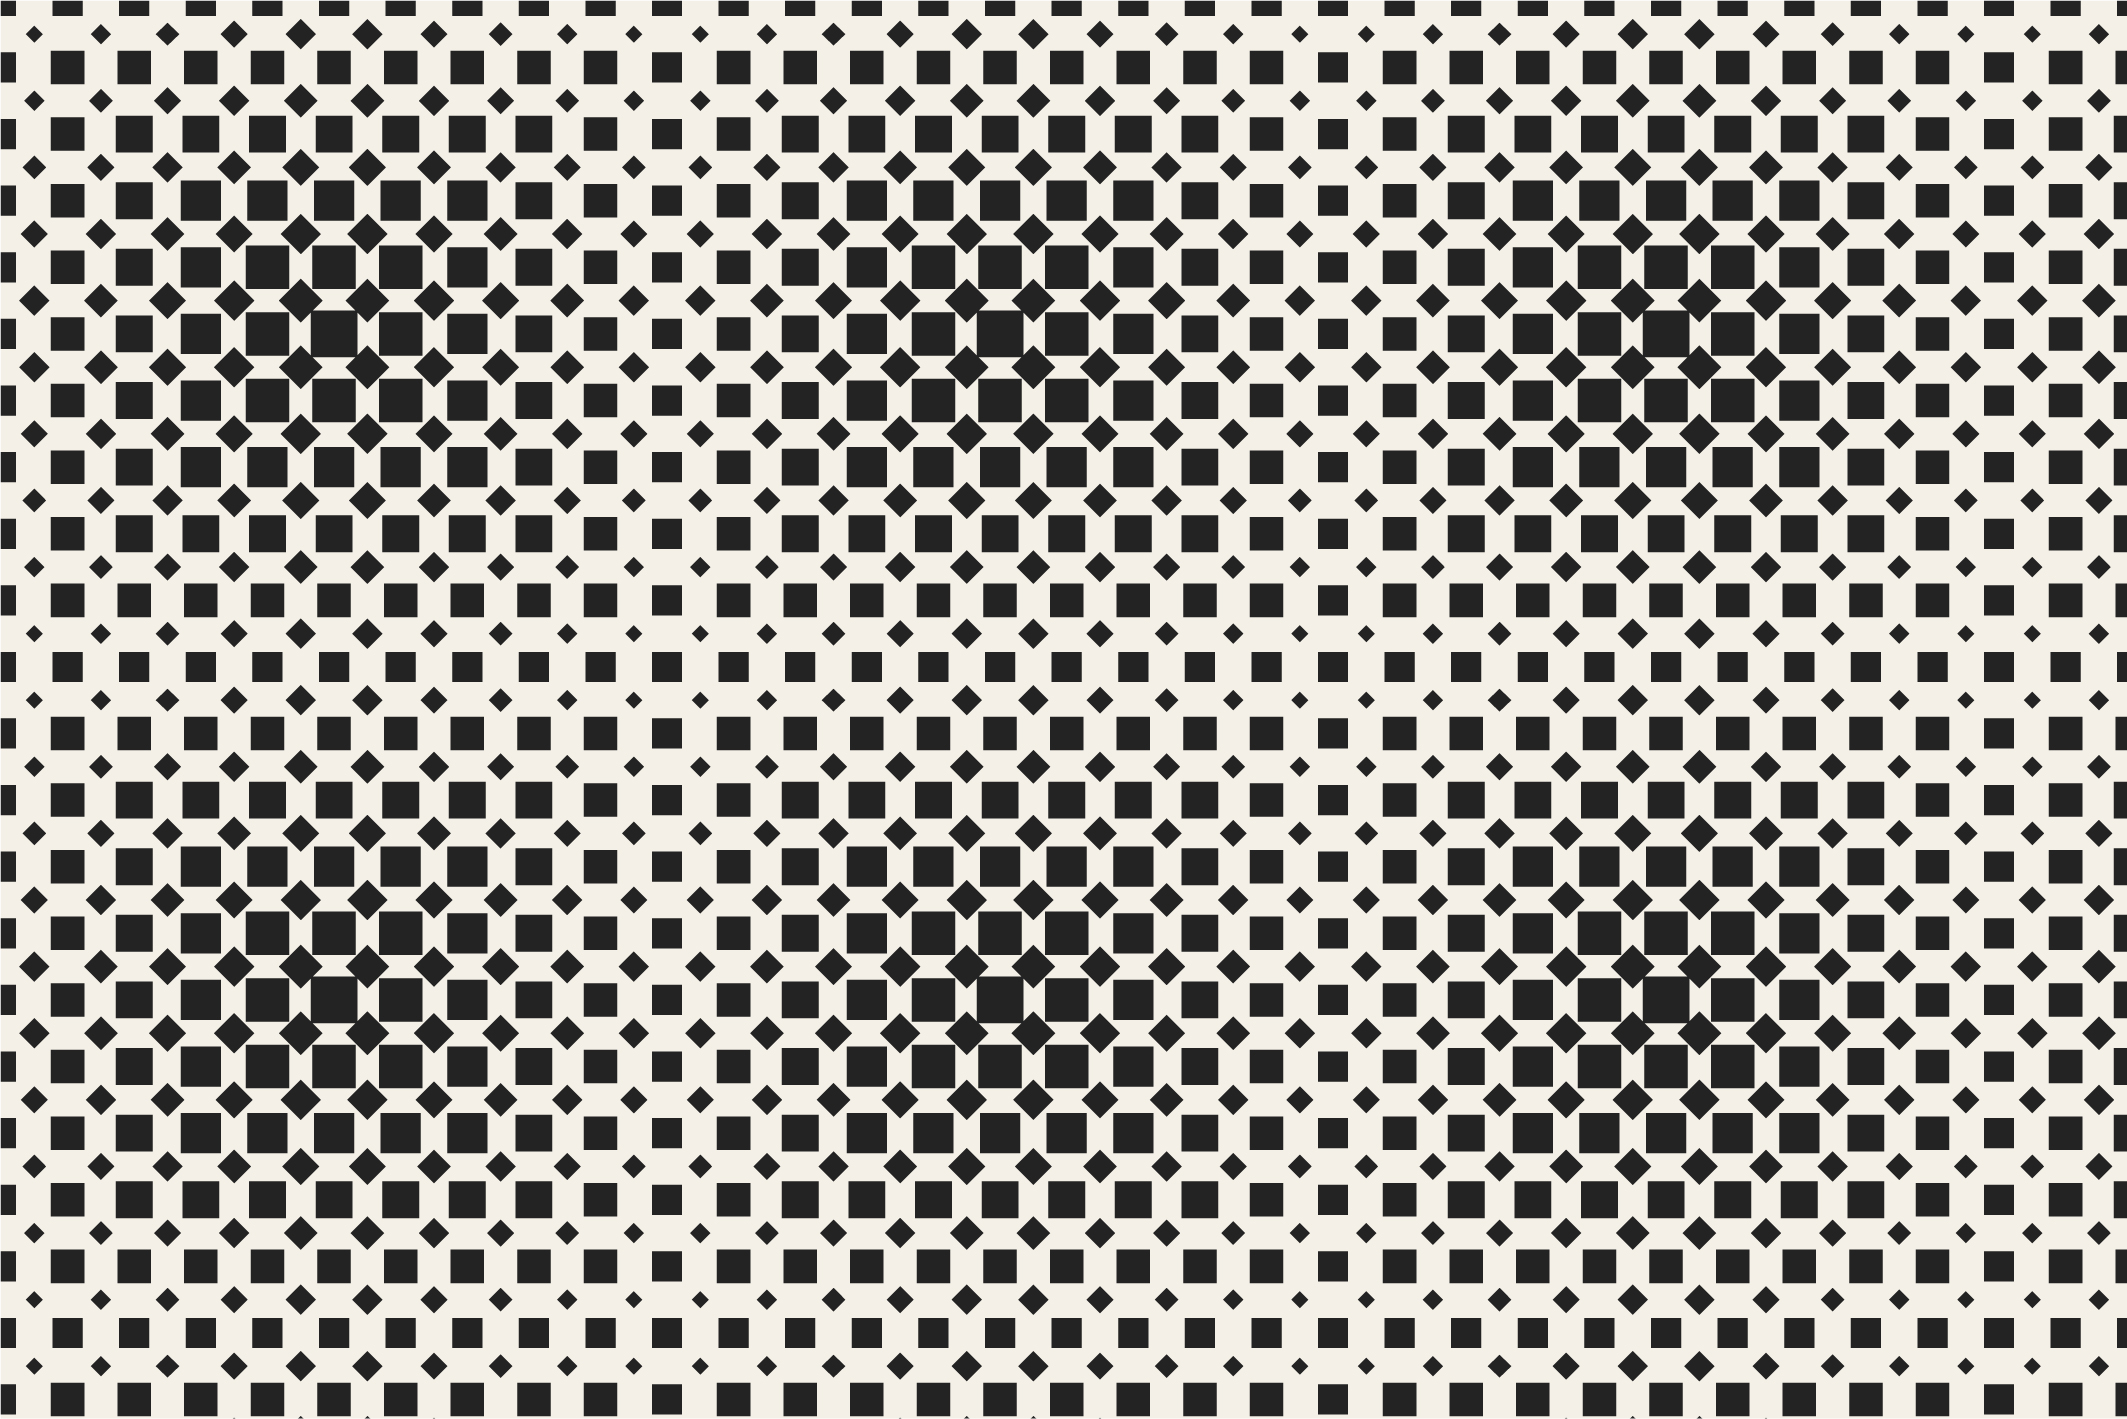 Halftone seamless patterns example image 4